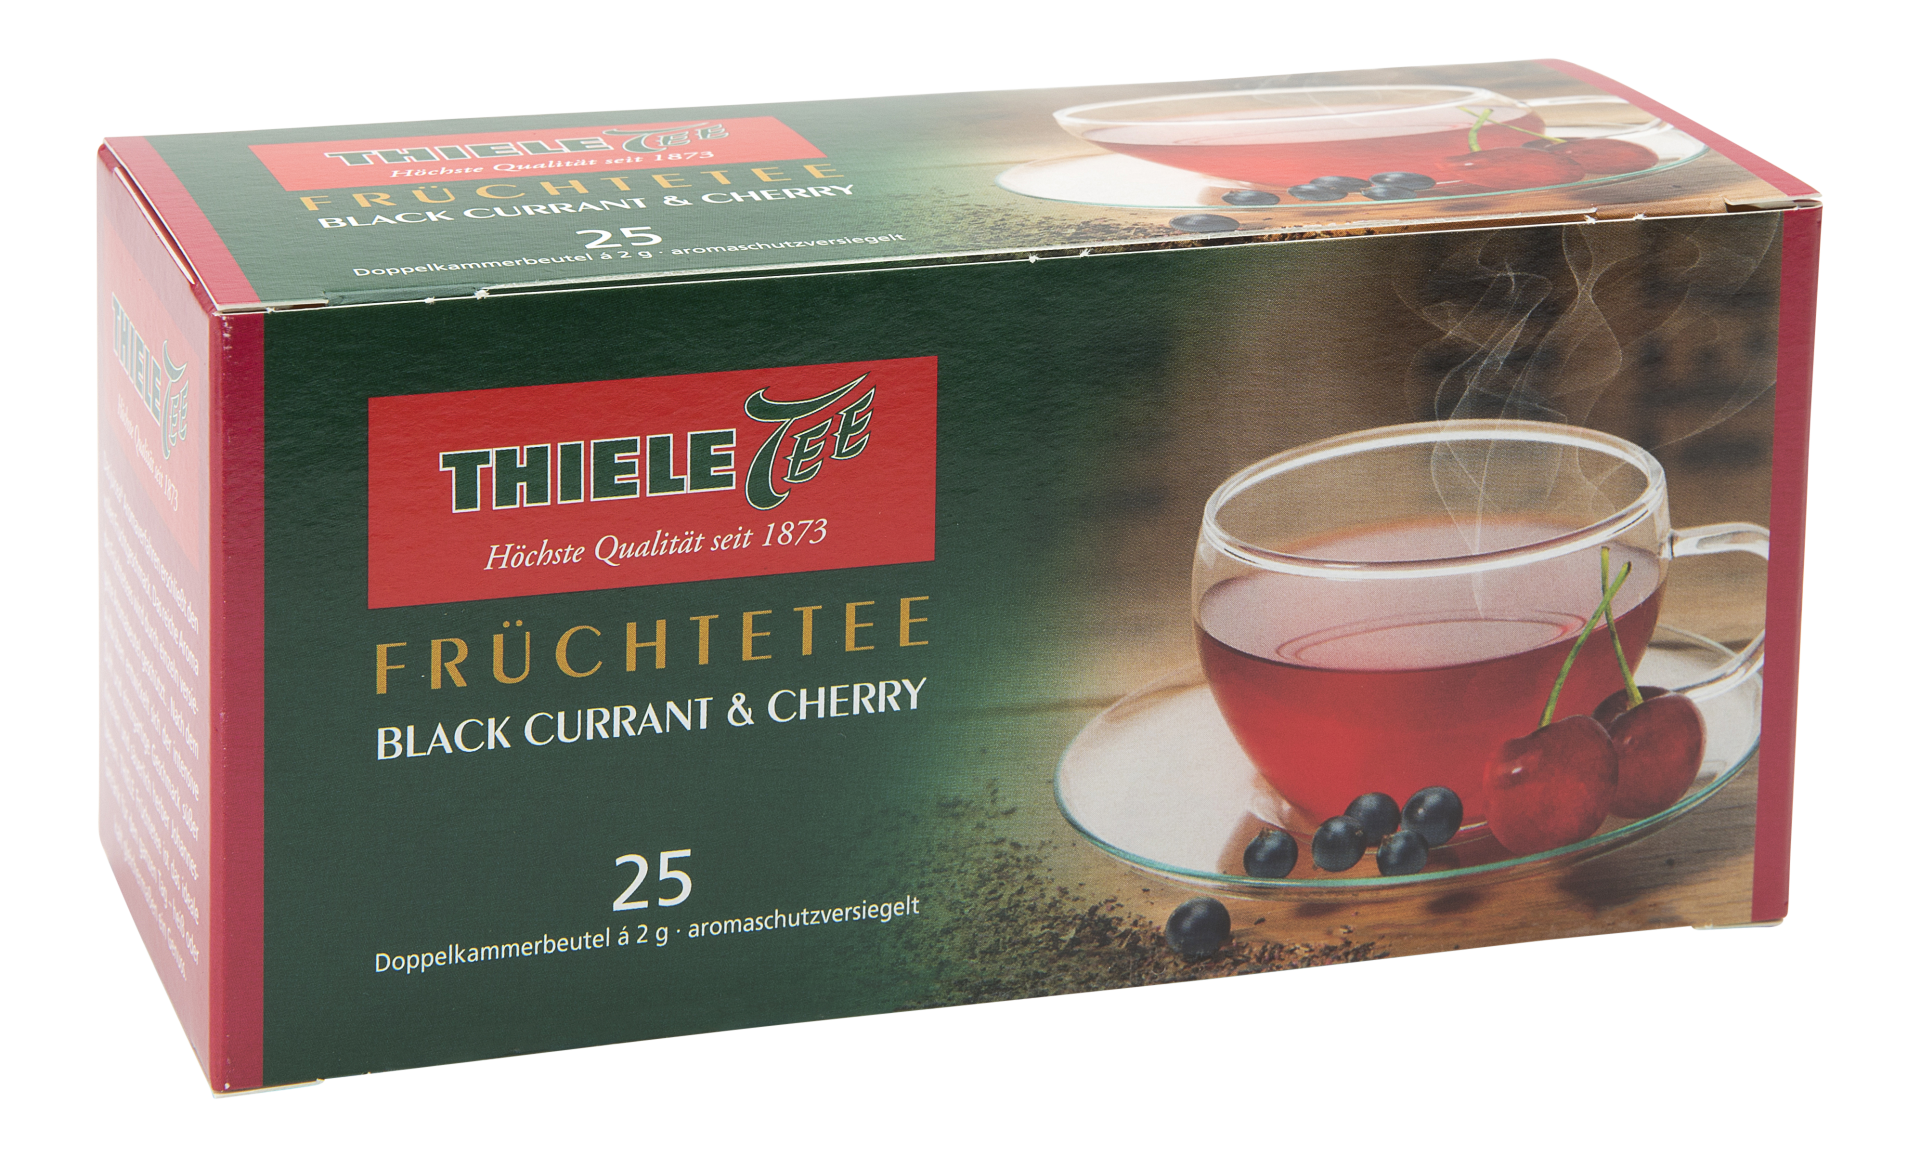 Juicea Blackcurrant & Cherry 25 x 2g